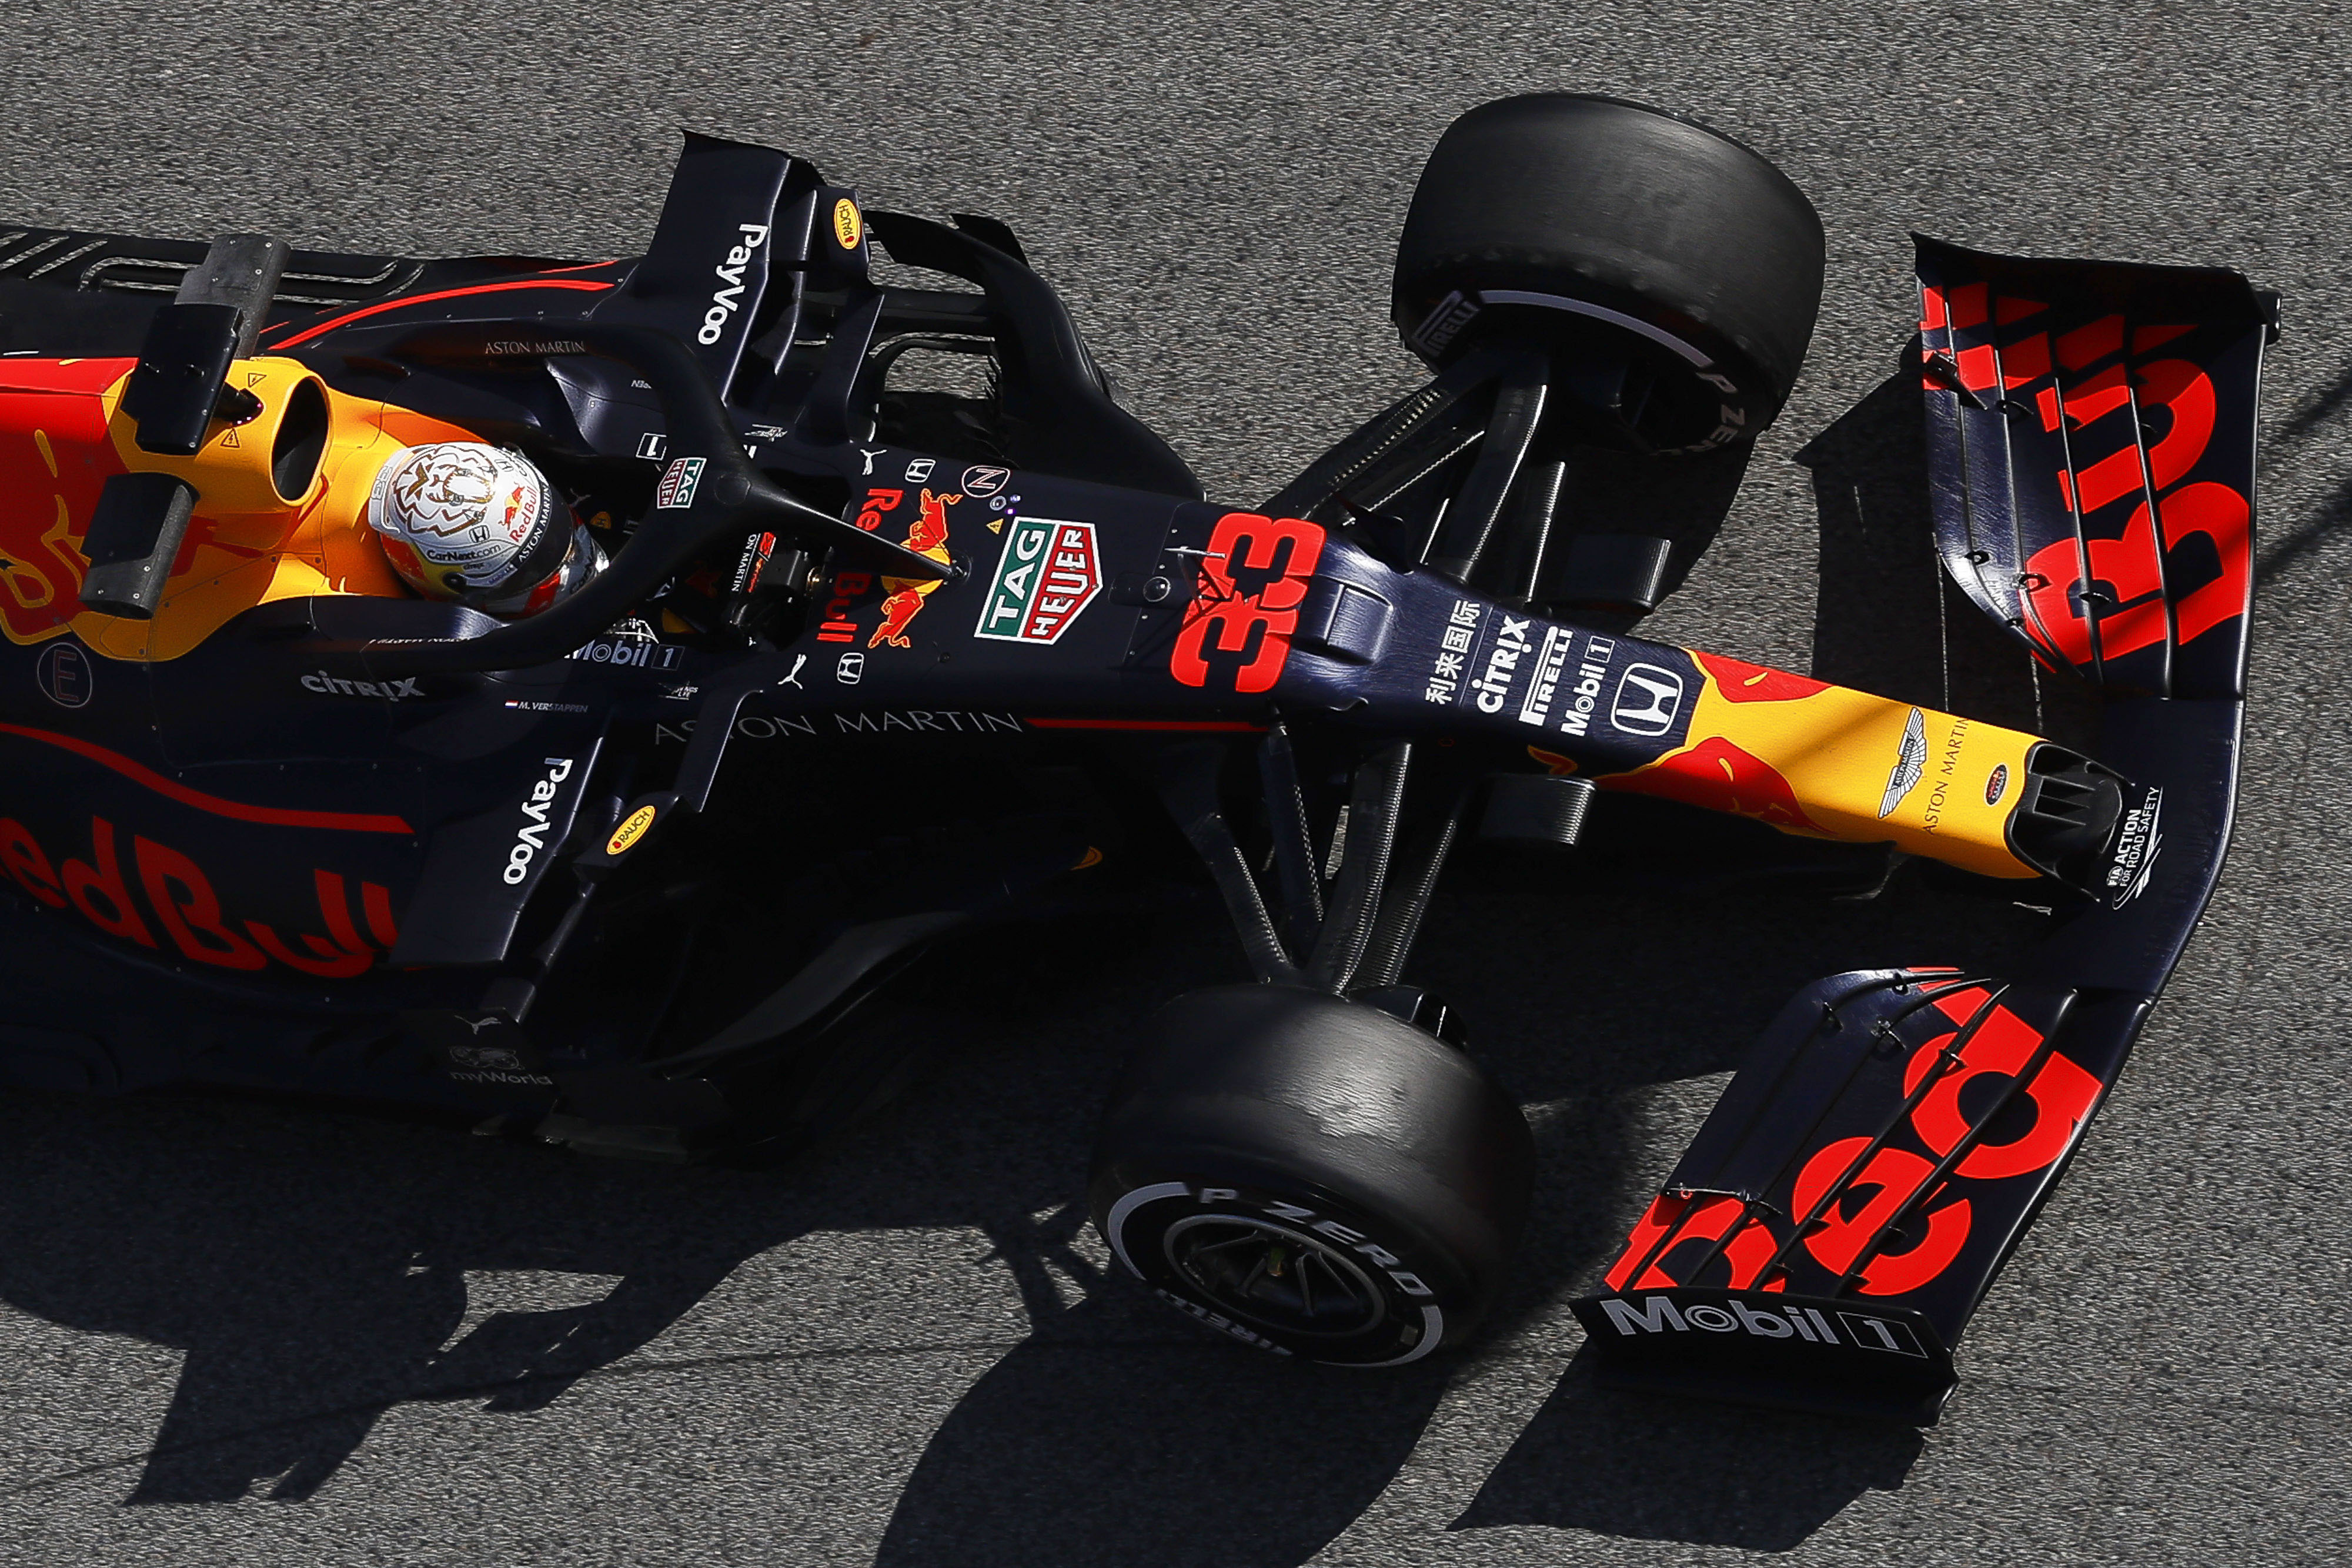 We've hit the ground running in 2020 testing, say Red Bull | Formula 1®